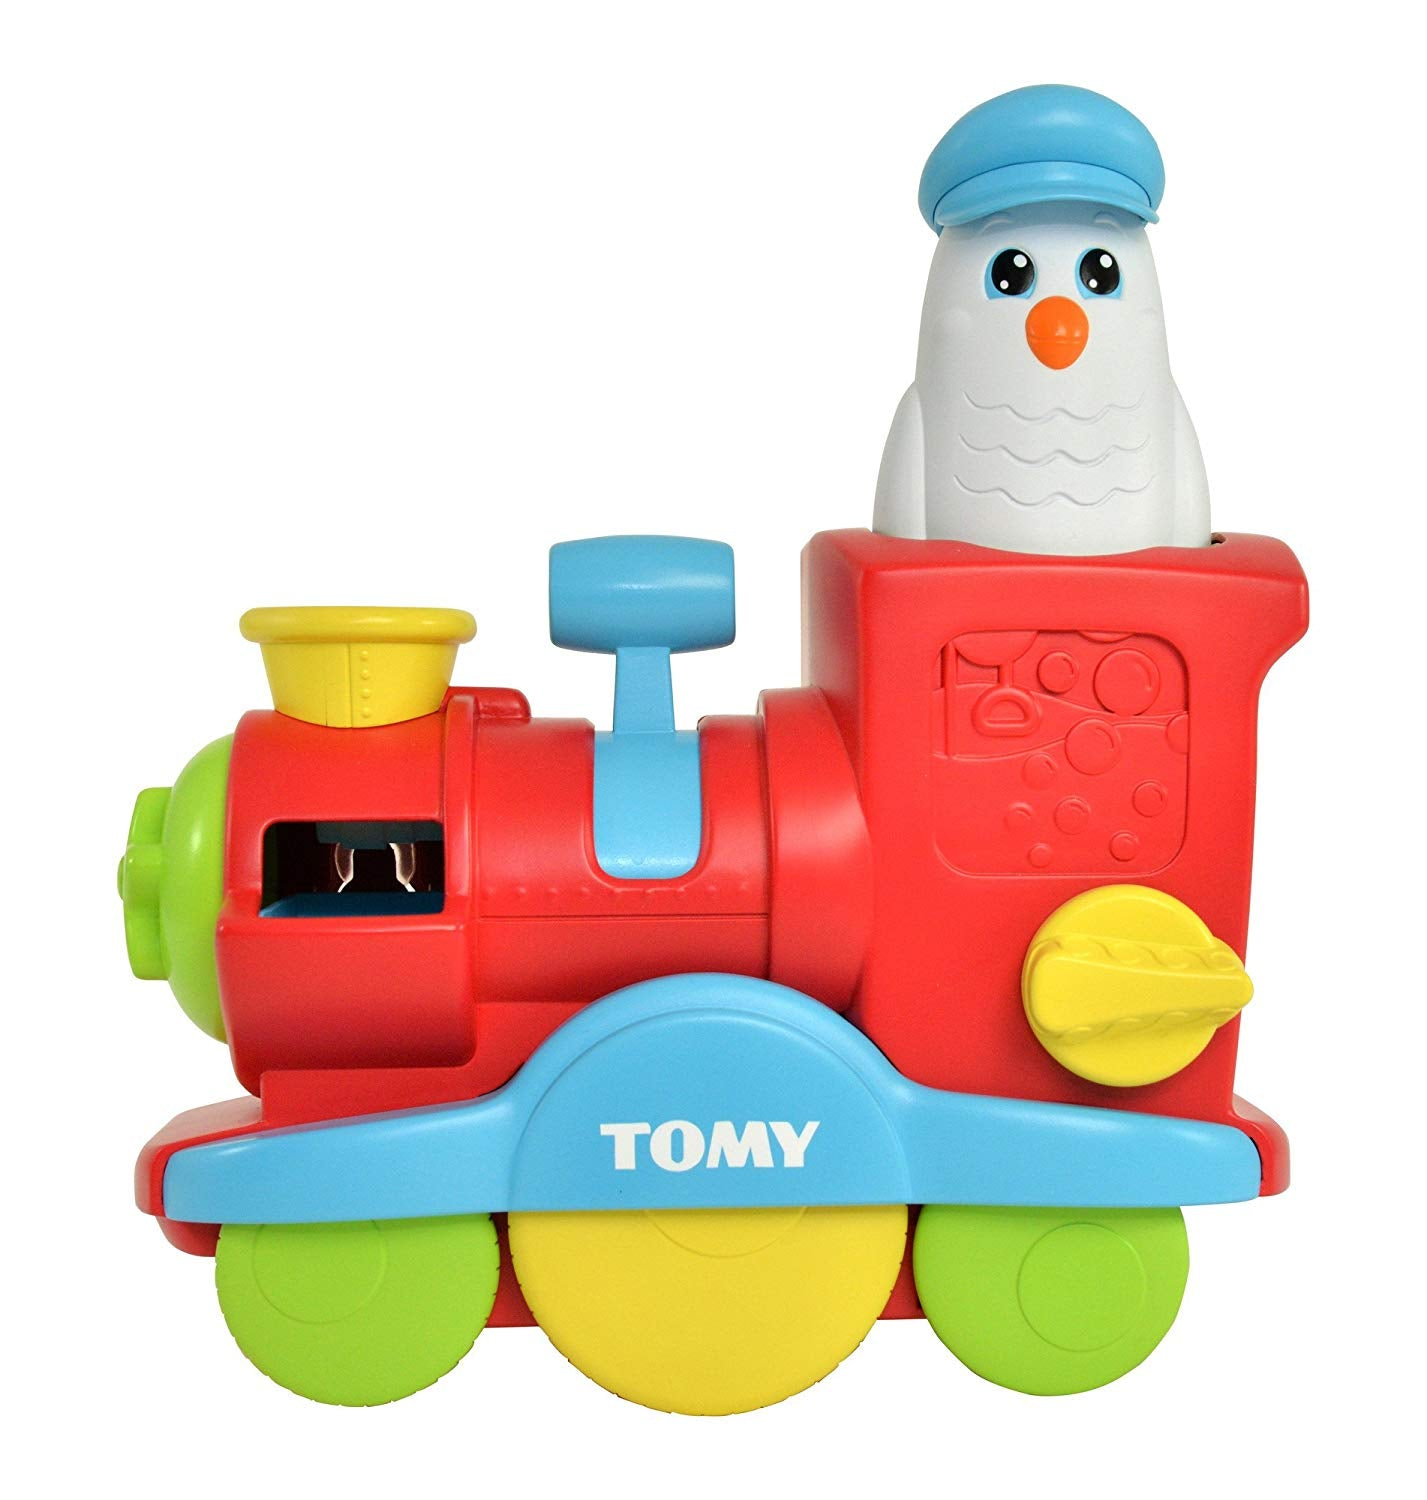 TOMY Toomies Bubble Blast Train - Bubble Bath Toy - Suitable From 18 Months